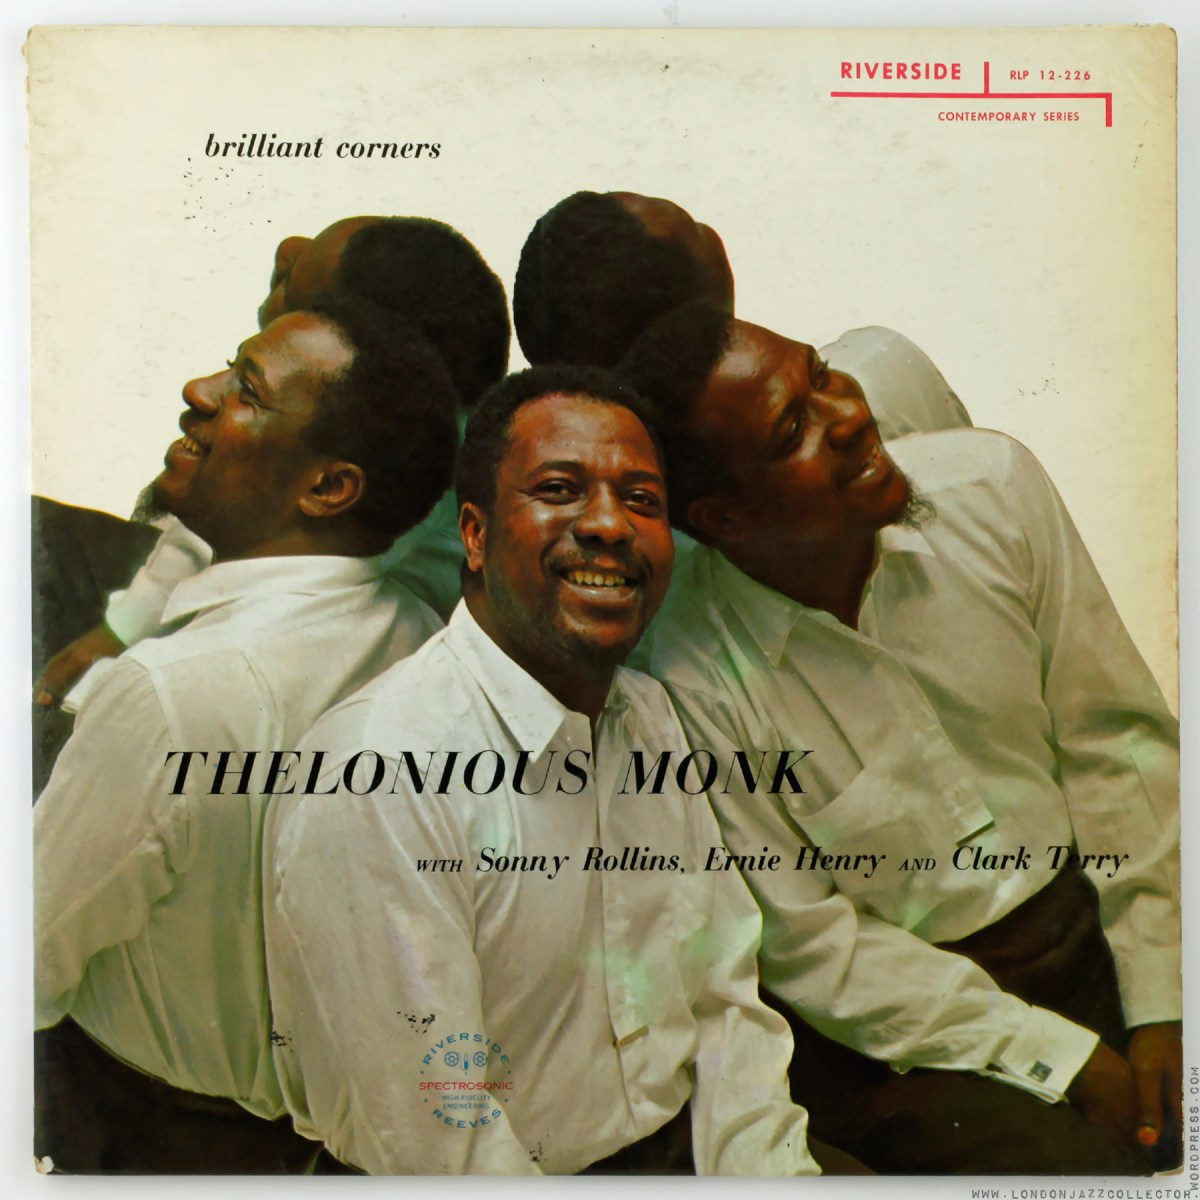 The Story Behind Brilliant Corners, By Thelonious Monk